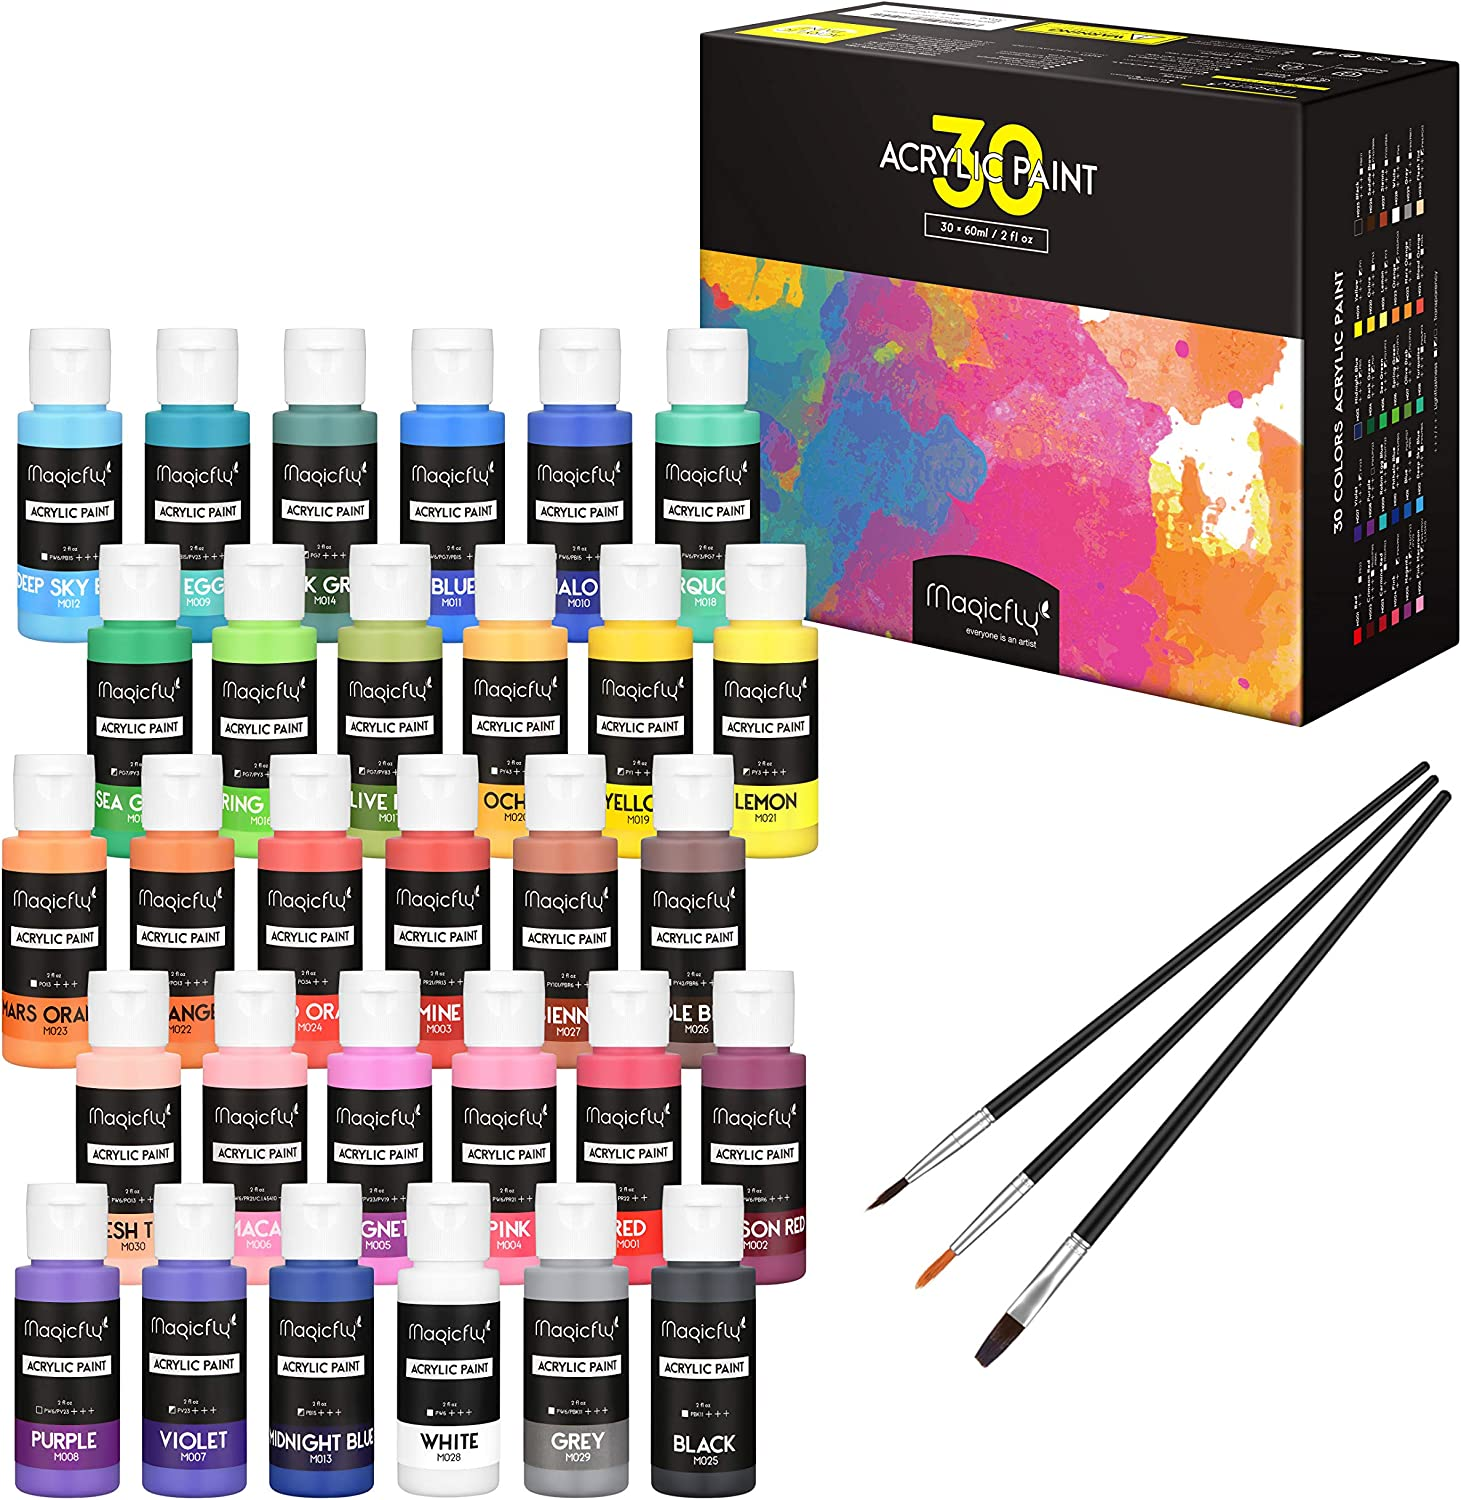 Magicfly 30 Colors Acrylic Paint Set (2fl oz/60ml Each), Non-Toxic Craft Paints with 3 Brushes, for Multi-Surface Paint on Canvas, Paper, Wood, Stone, Ceramic and Model : Office Products